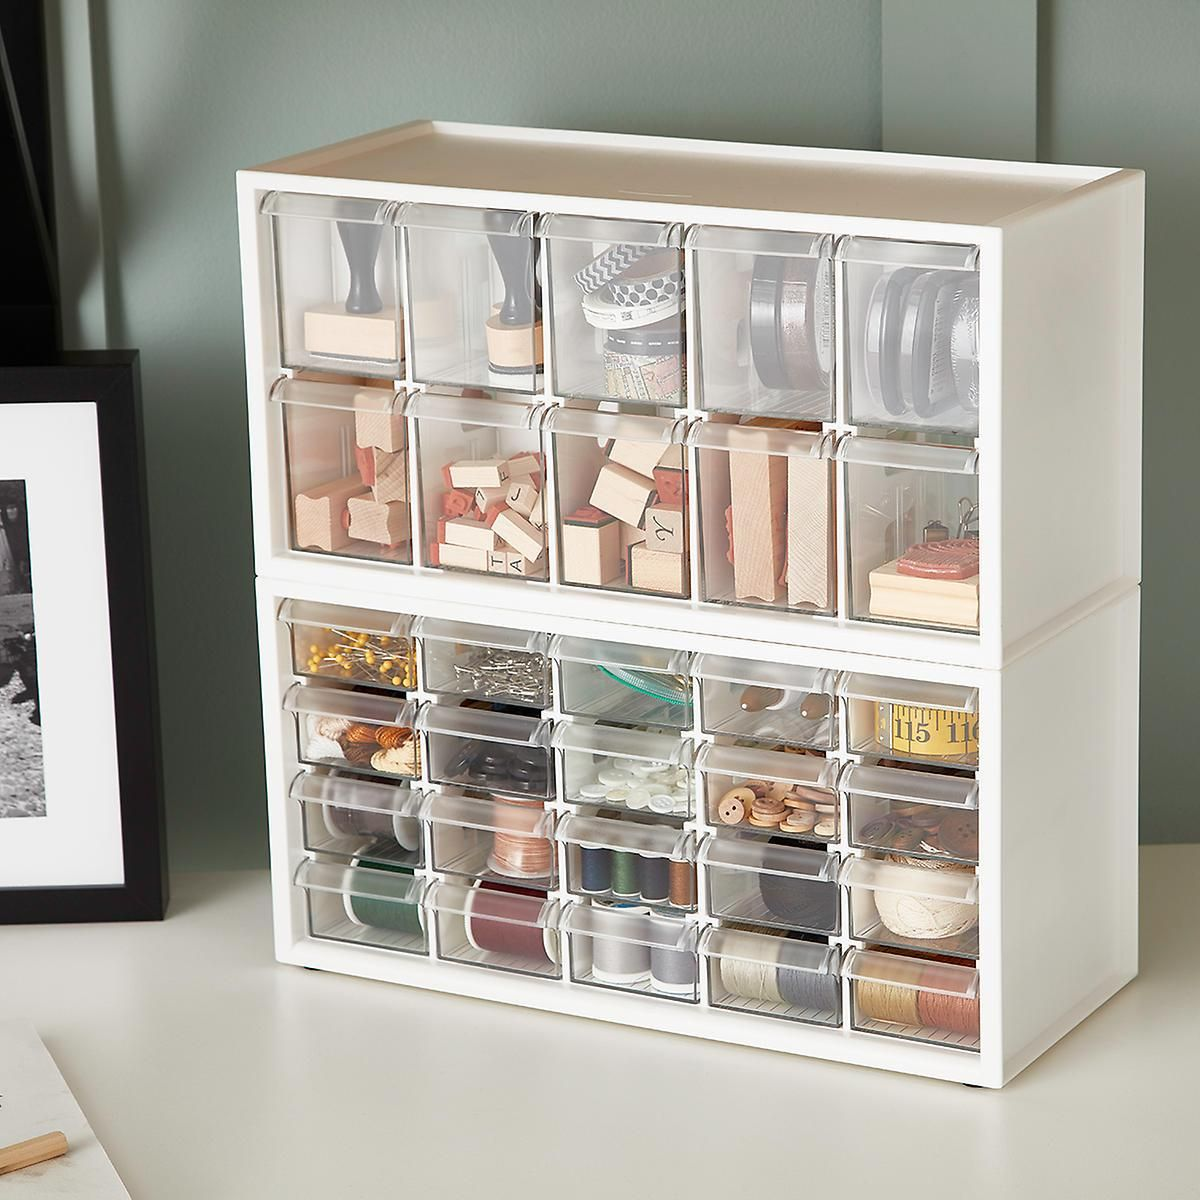 Stackable Craft Organizer Drawers In 2020 Organize Drawers